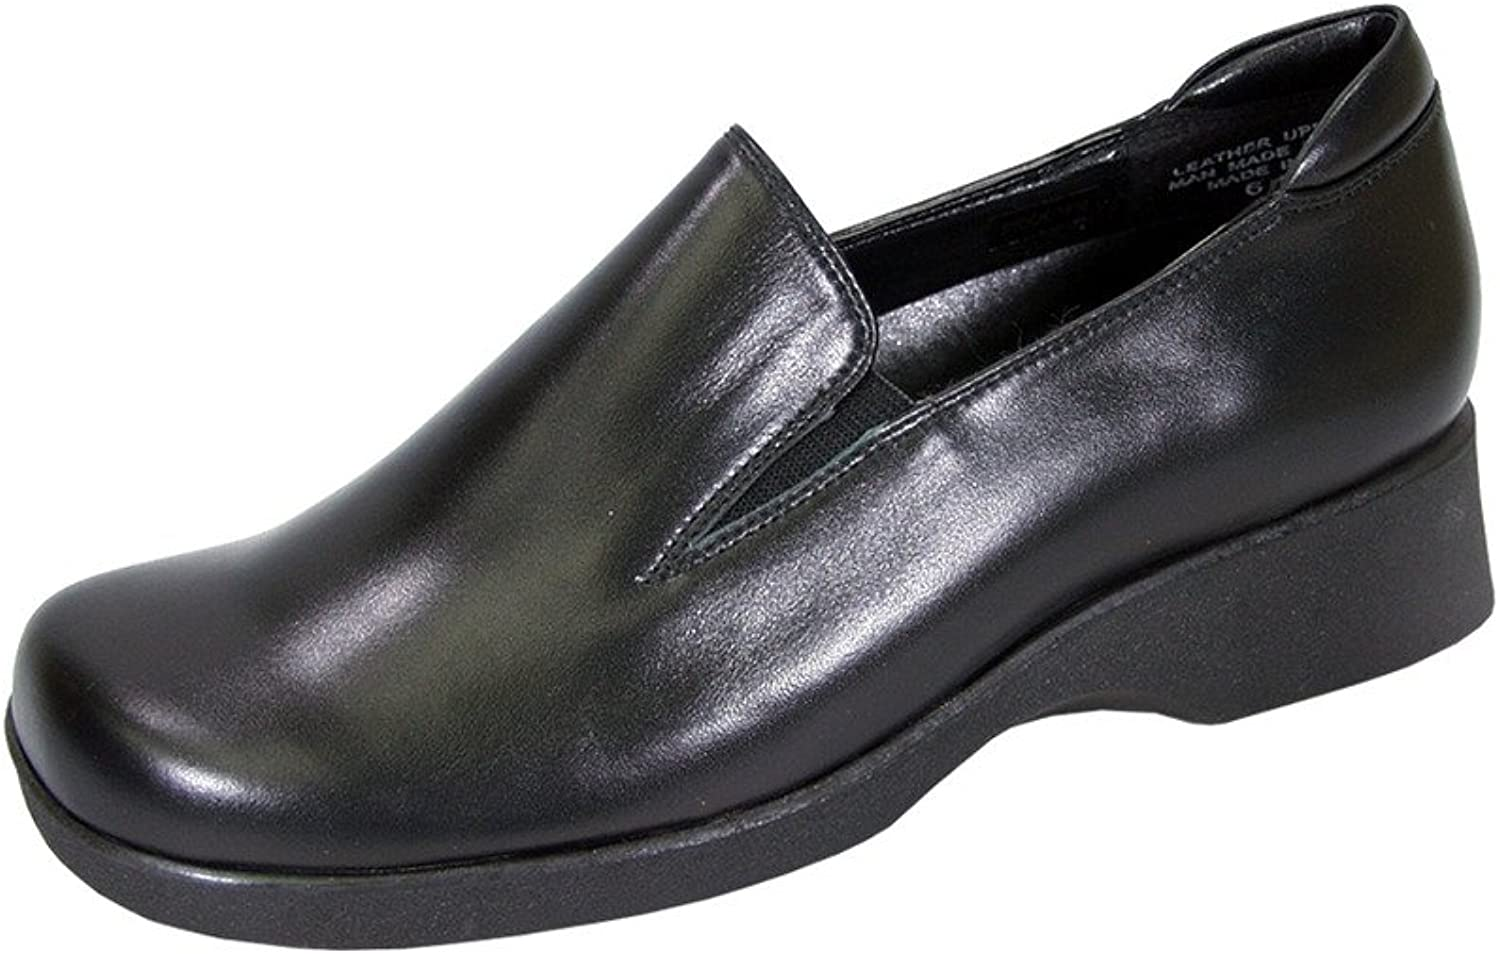 24 Hour Comfort Bristol Women Wide Width Classic Elegant Cushioned Leather Slip On shoes